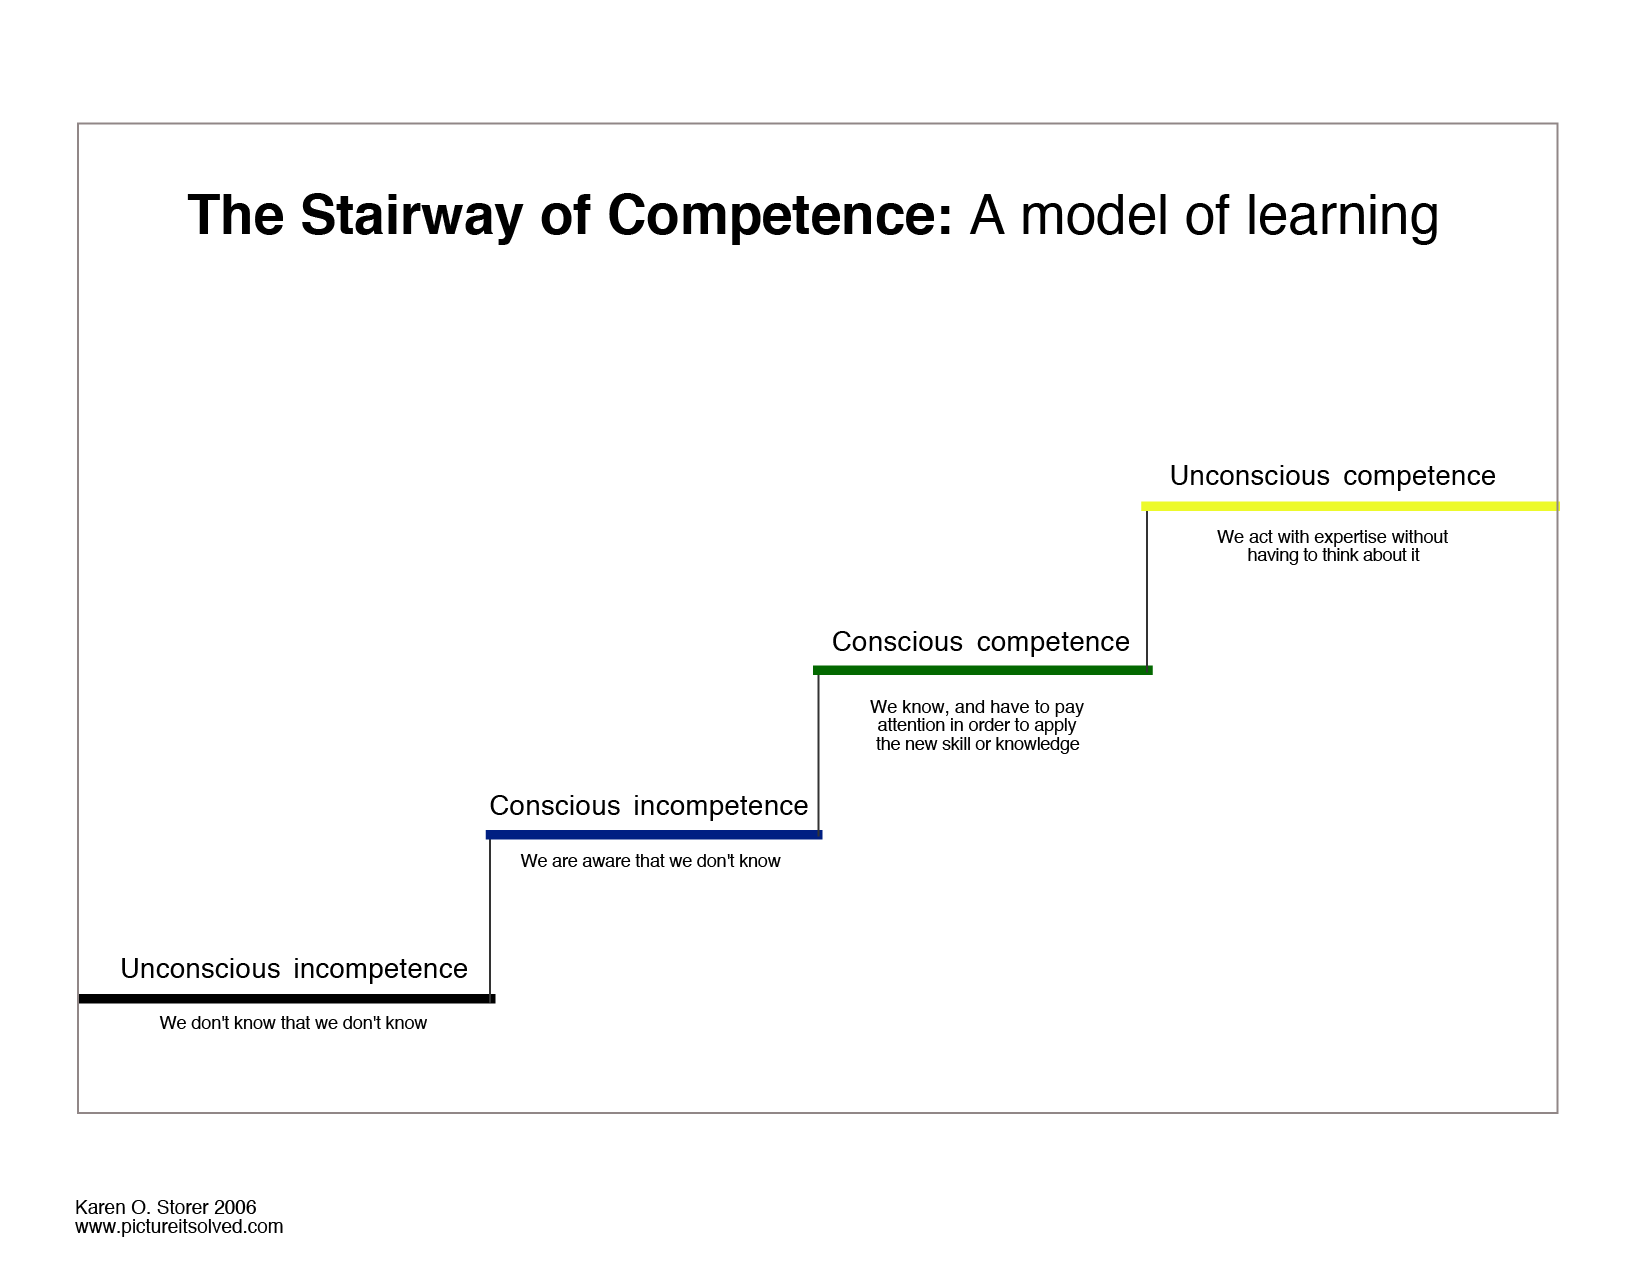 concept diagram of the stairway of competence model of learning